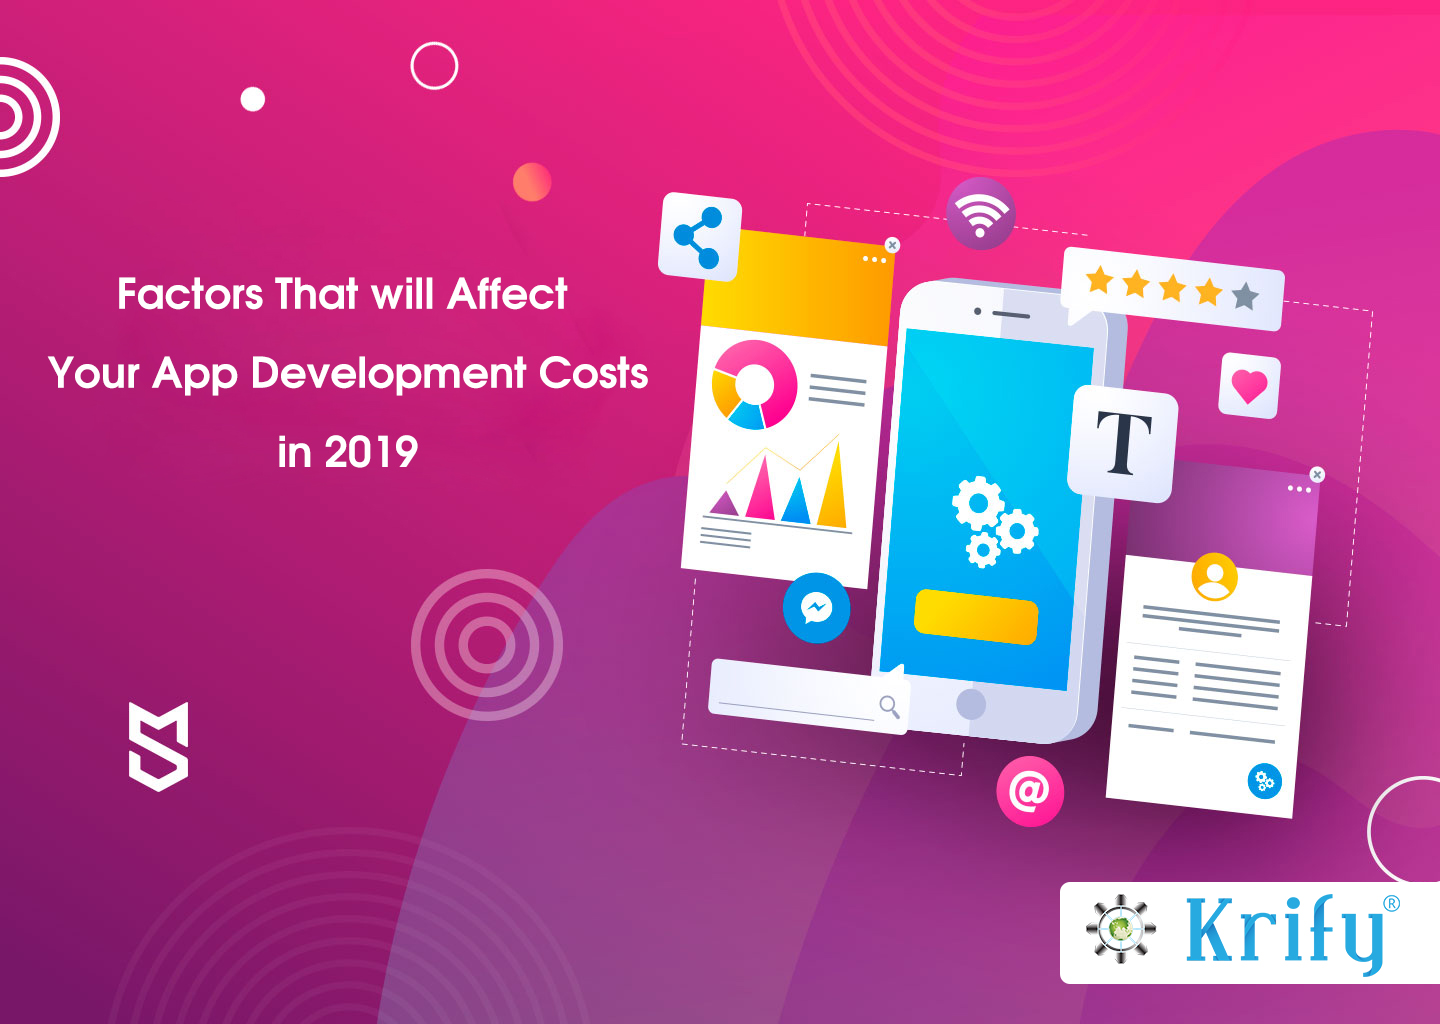 Factors that will Affect Your App Development Costs in 2019 | Krify